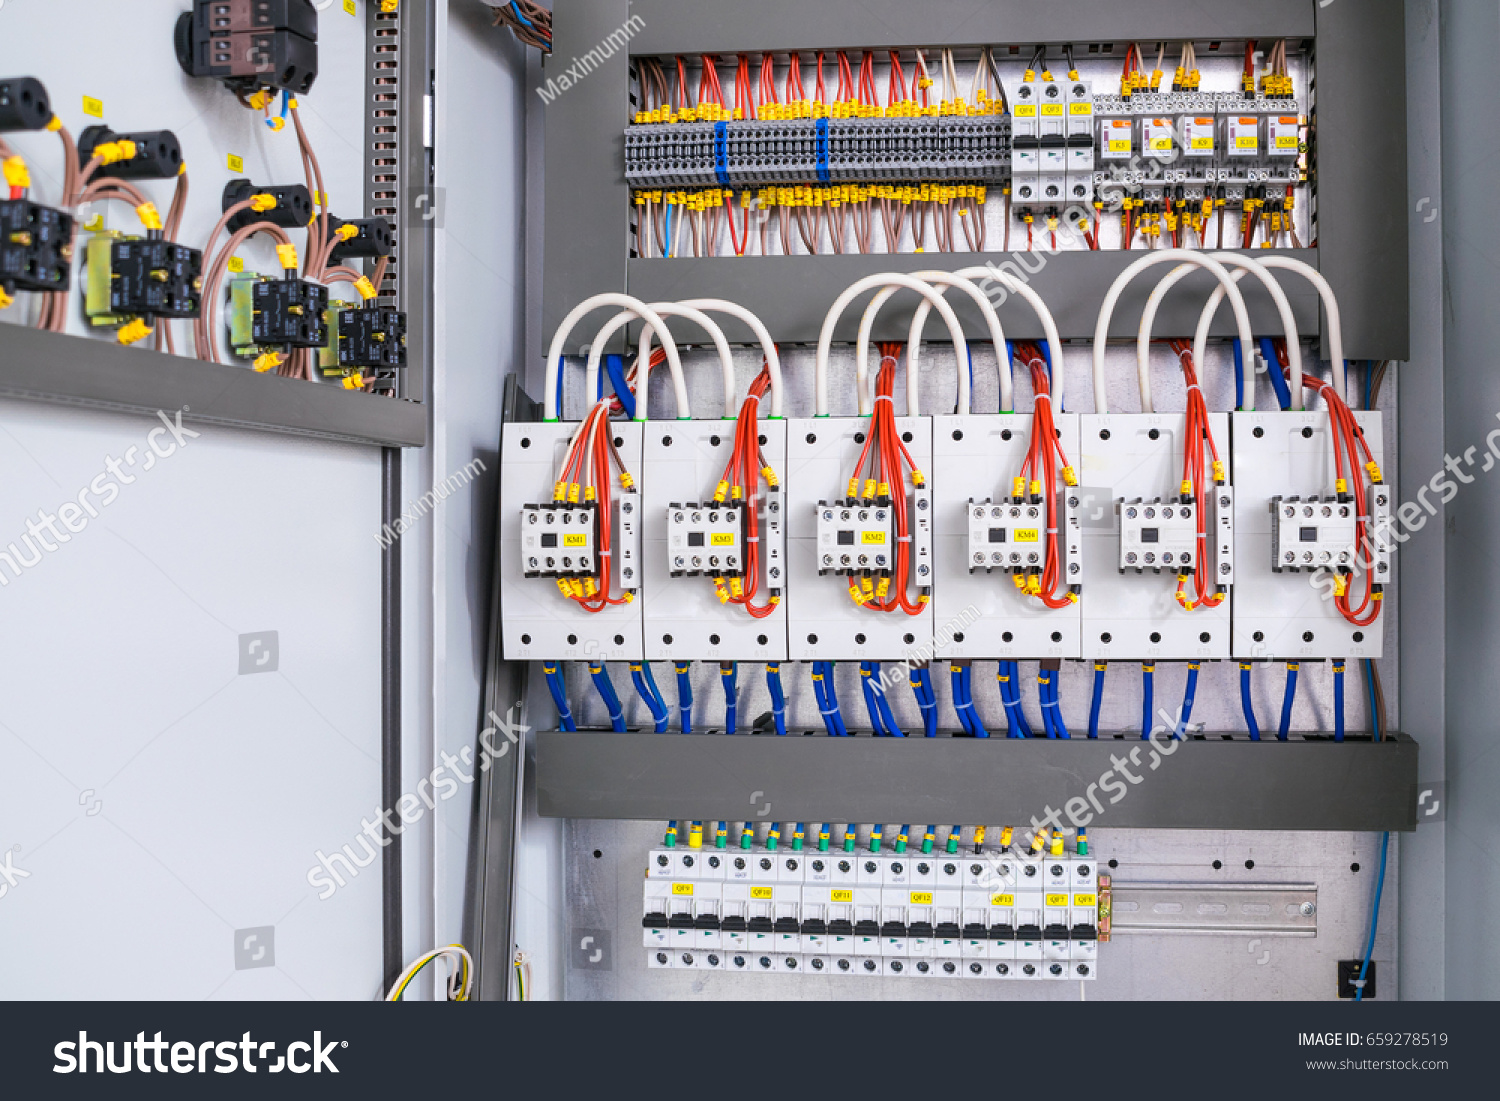 Open Electrical Box Switching Equipment Many Stock Photo Edit Now Circuit Breaker With Wires Contacts And Terminal Blocks Close